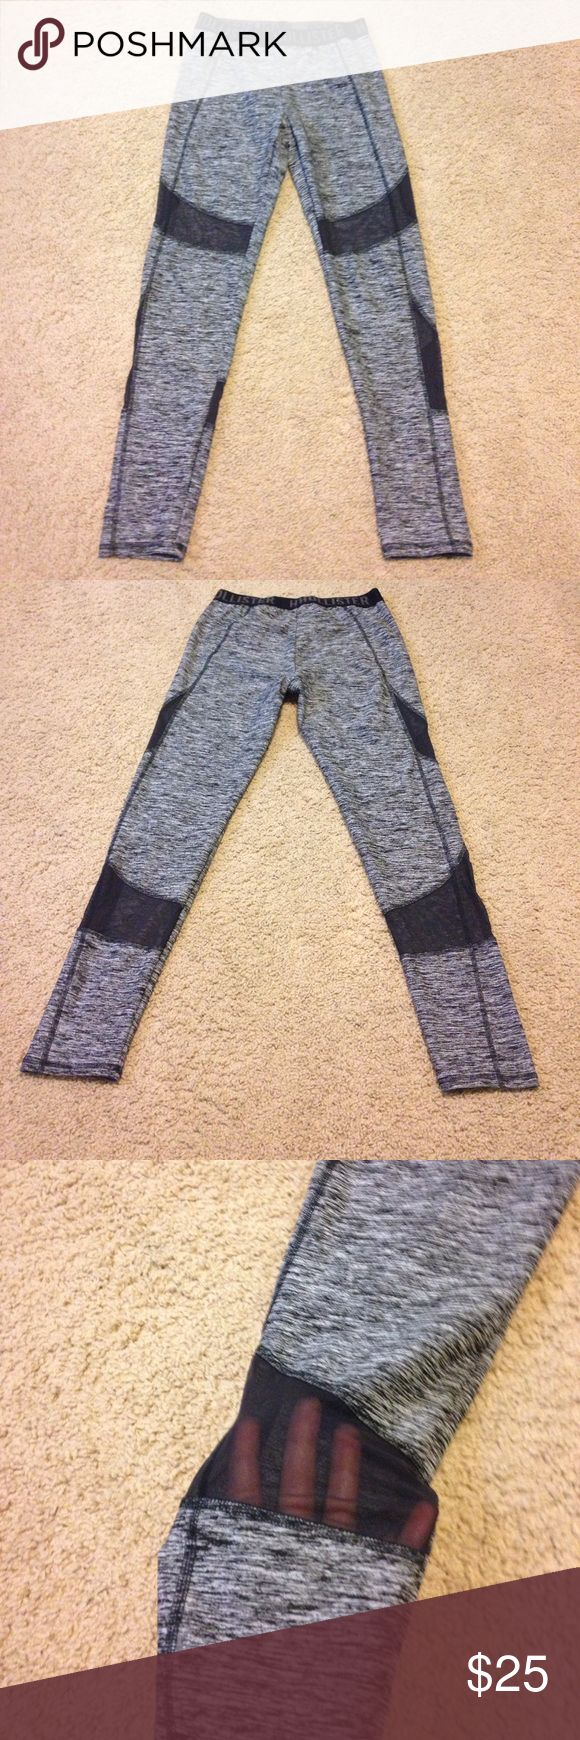 Mesh Hollister Leggings Black and white striped leggings with mesh on the lower thighs and back of calves. They are very comfortable, they just don't match my closet. Only worn 2-3 times. Hollister Pants Leggings